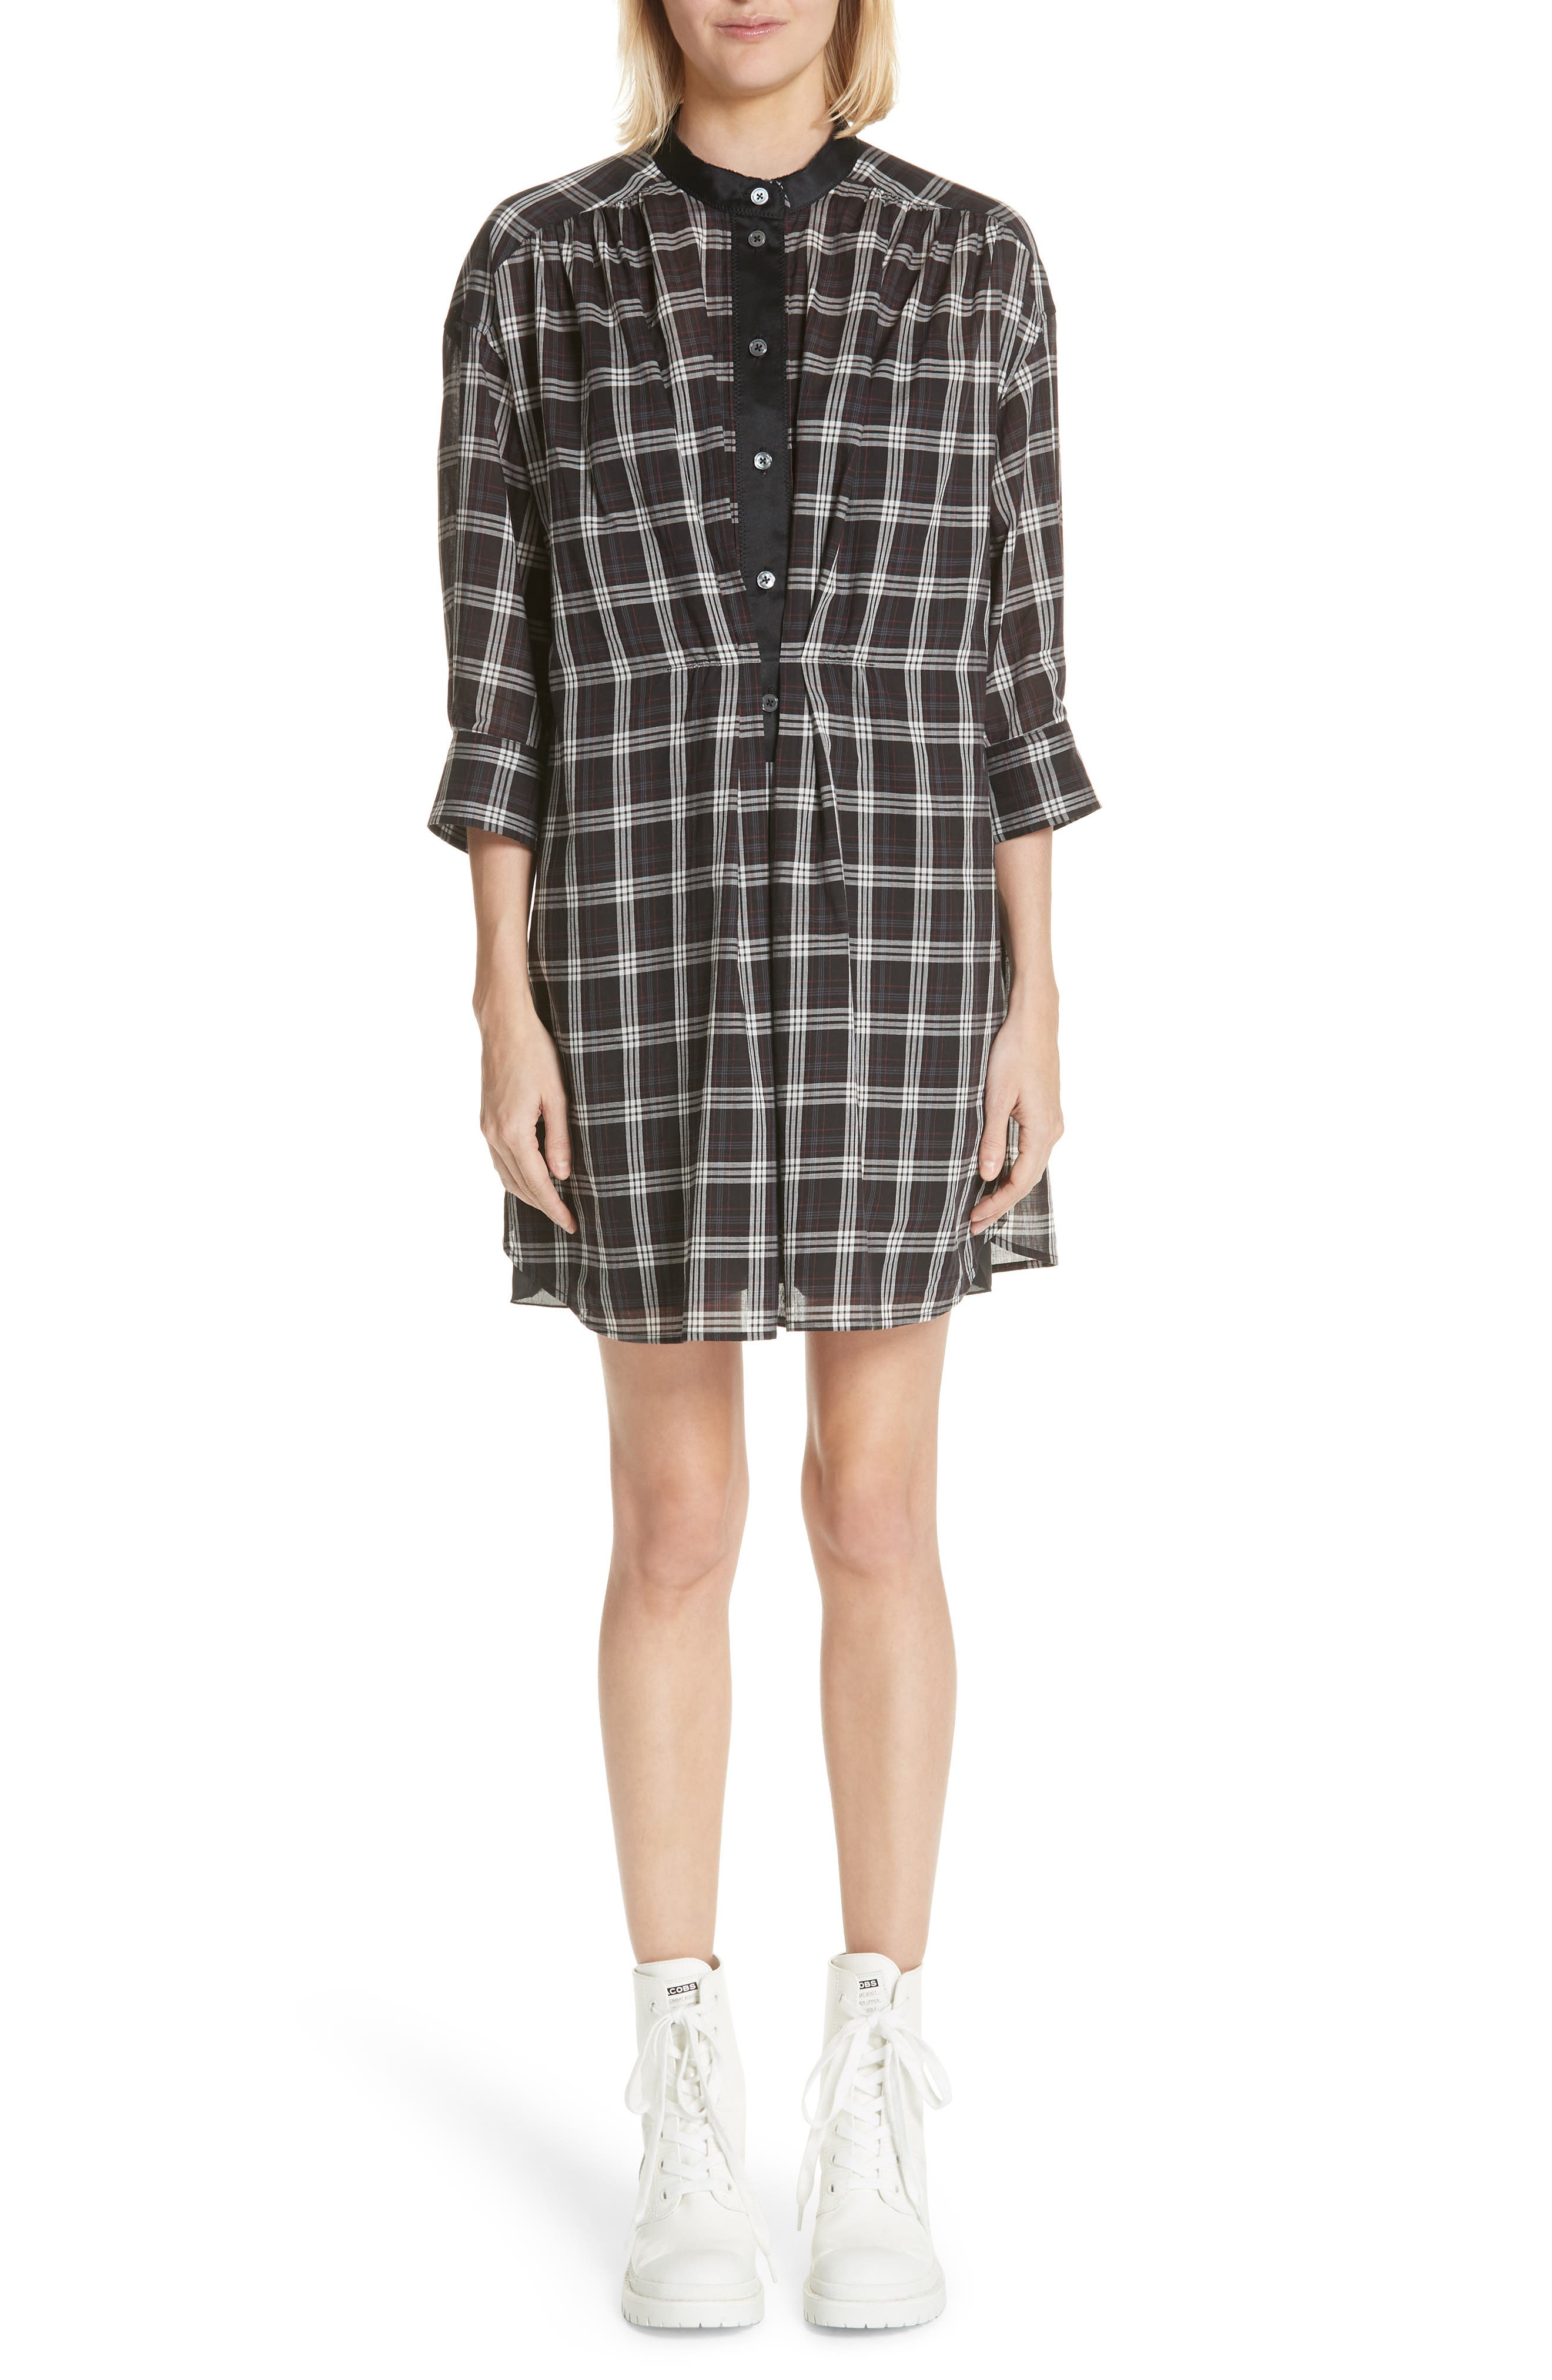 Marc Jacobs Patchwork Plaid Dress, Black